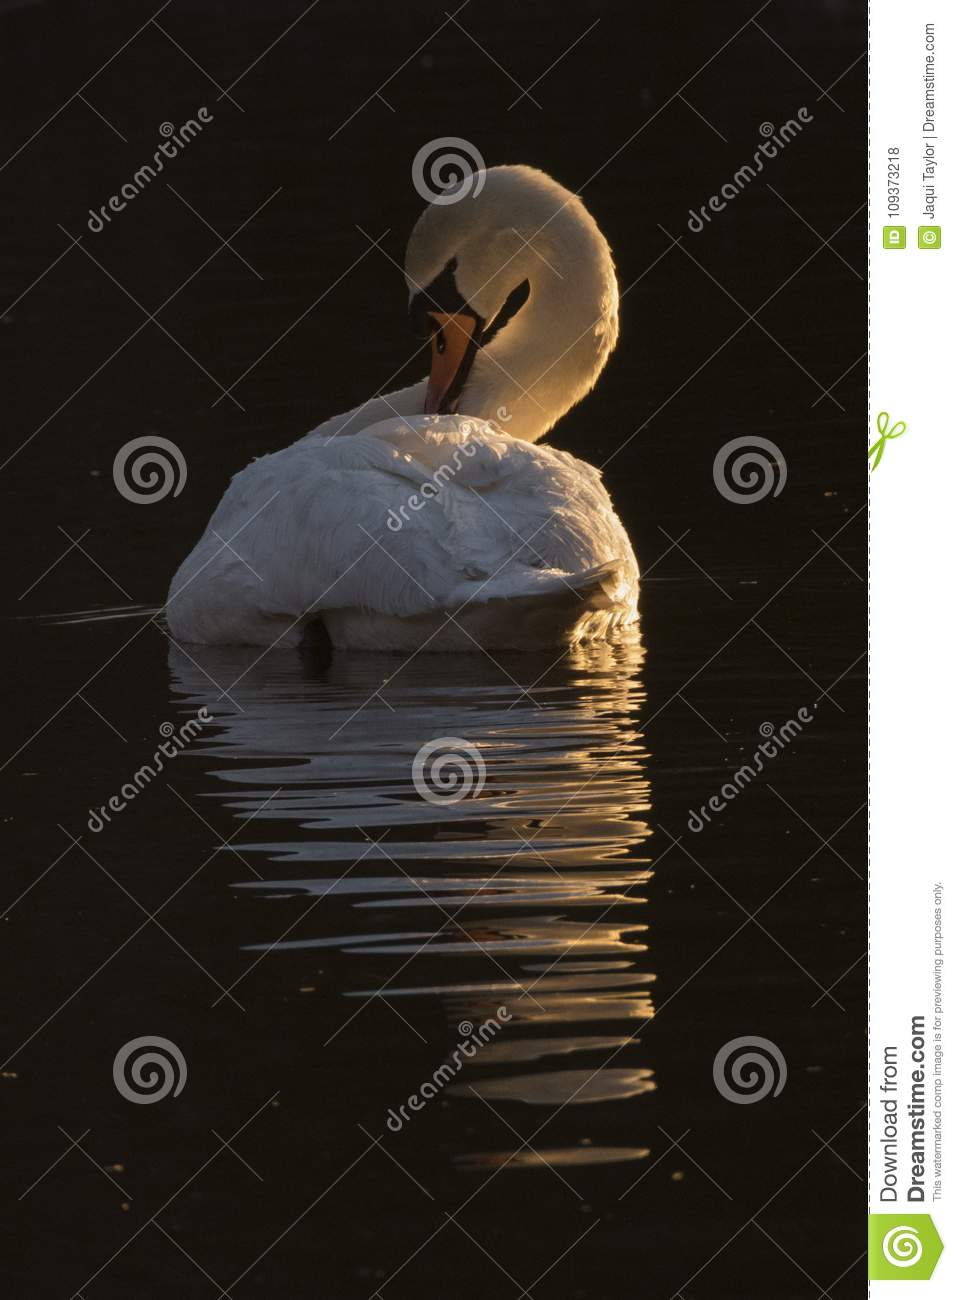 A white swan in the early morning light Southampton